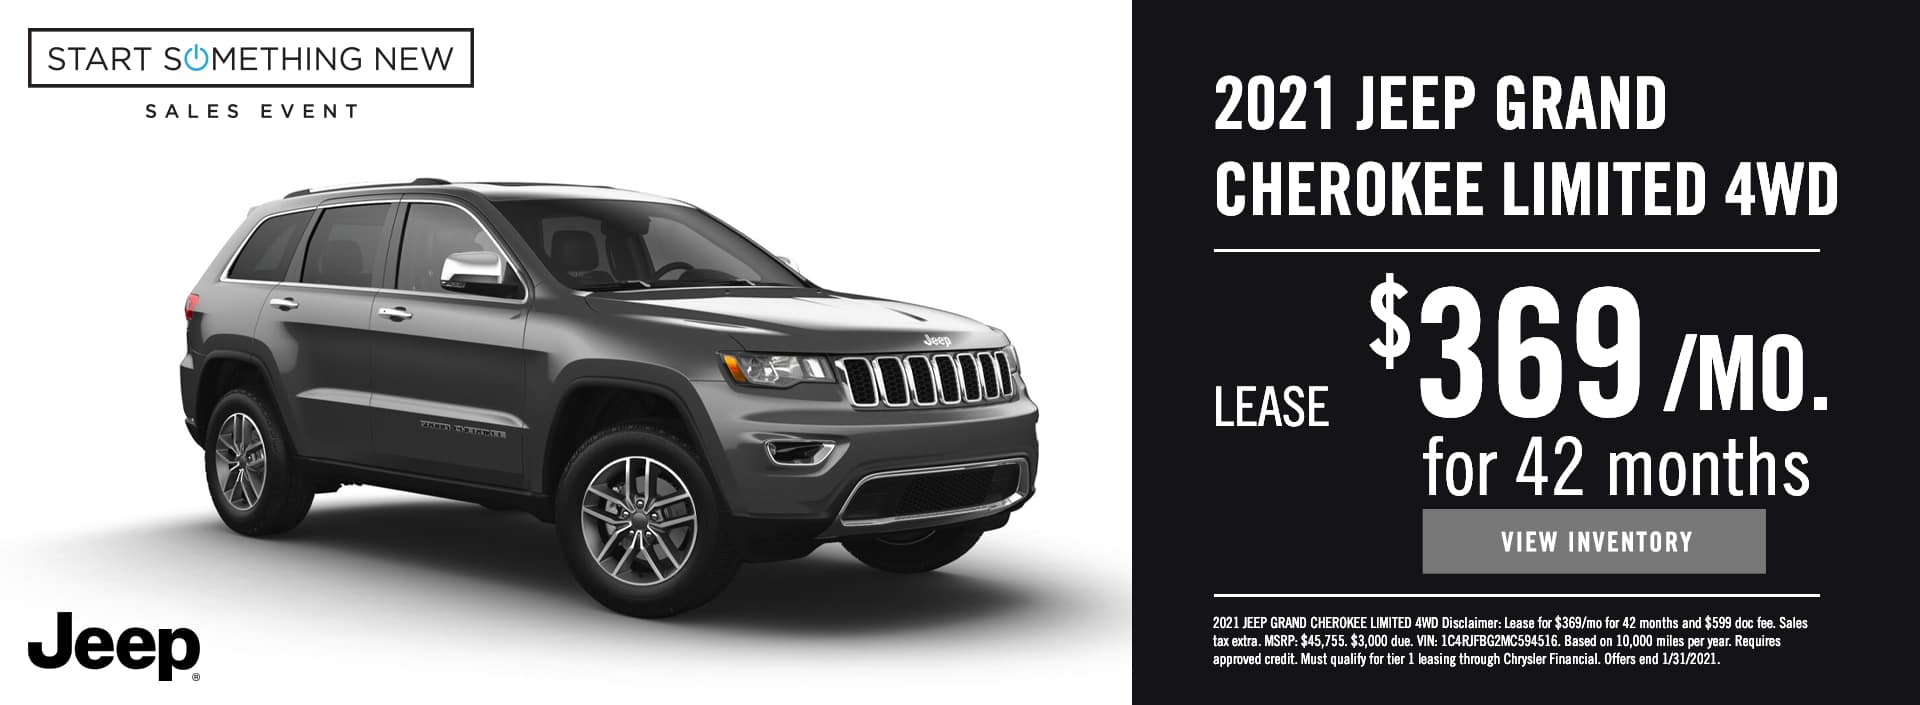 EAG_DJR_2021 JEEP GRAND CHEROKEE LIMITED 4WD